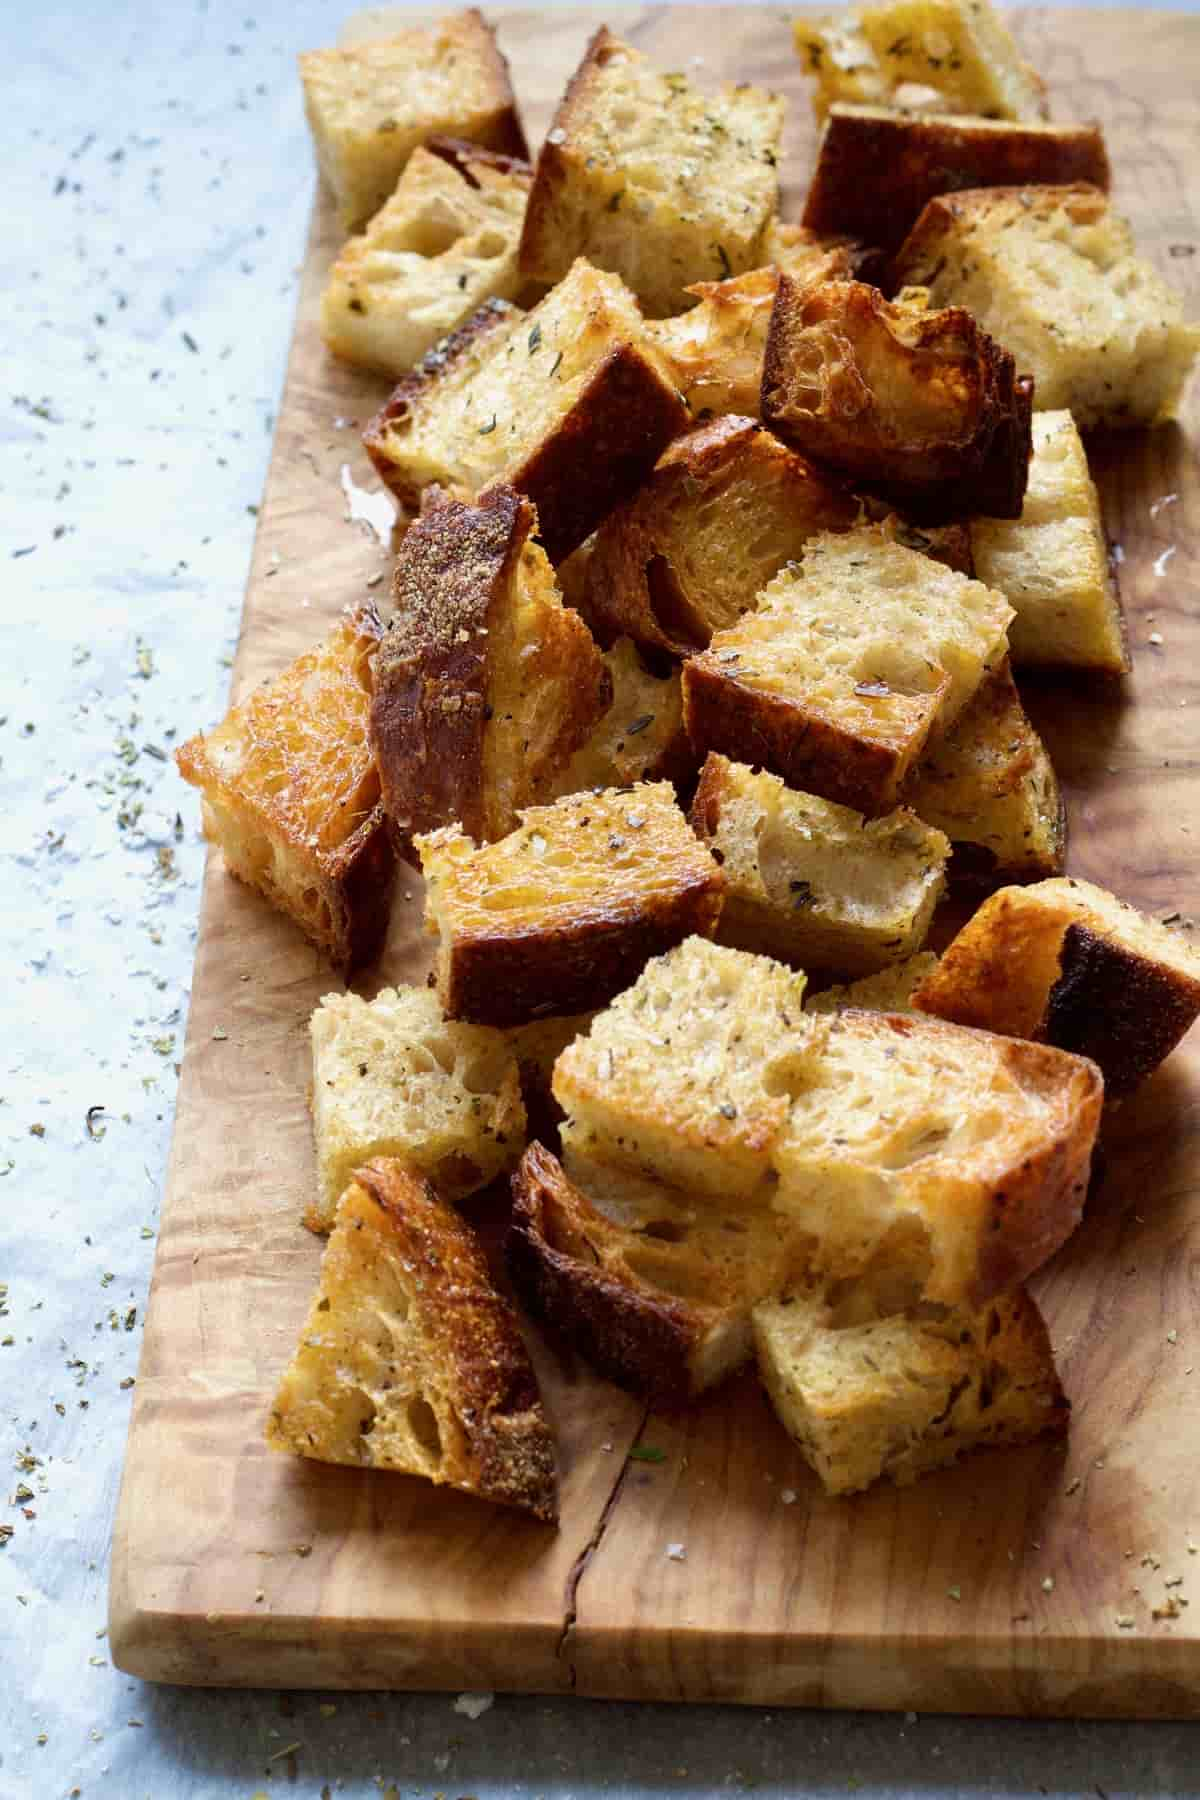 Homemade croutons piled up on a wooden board.